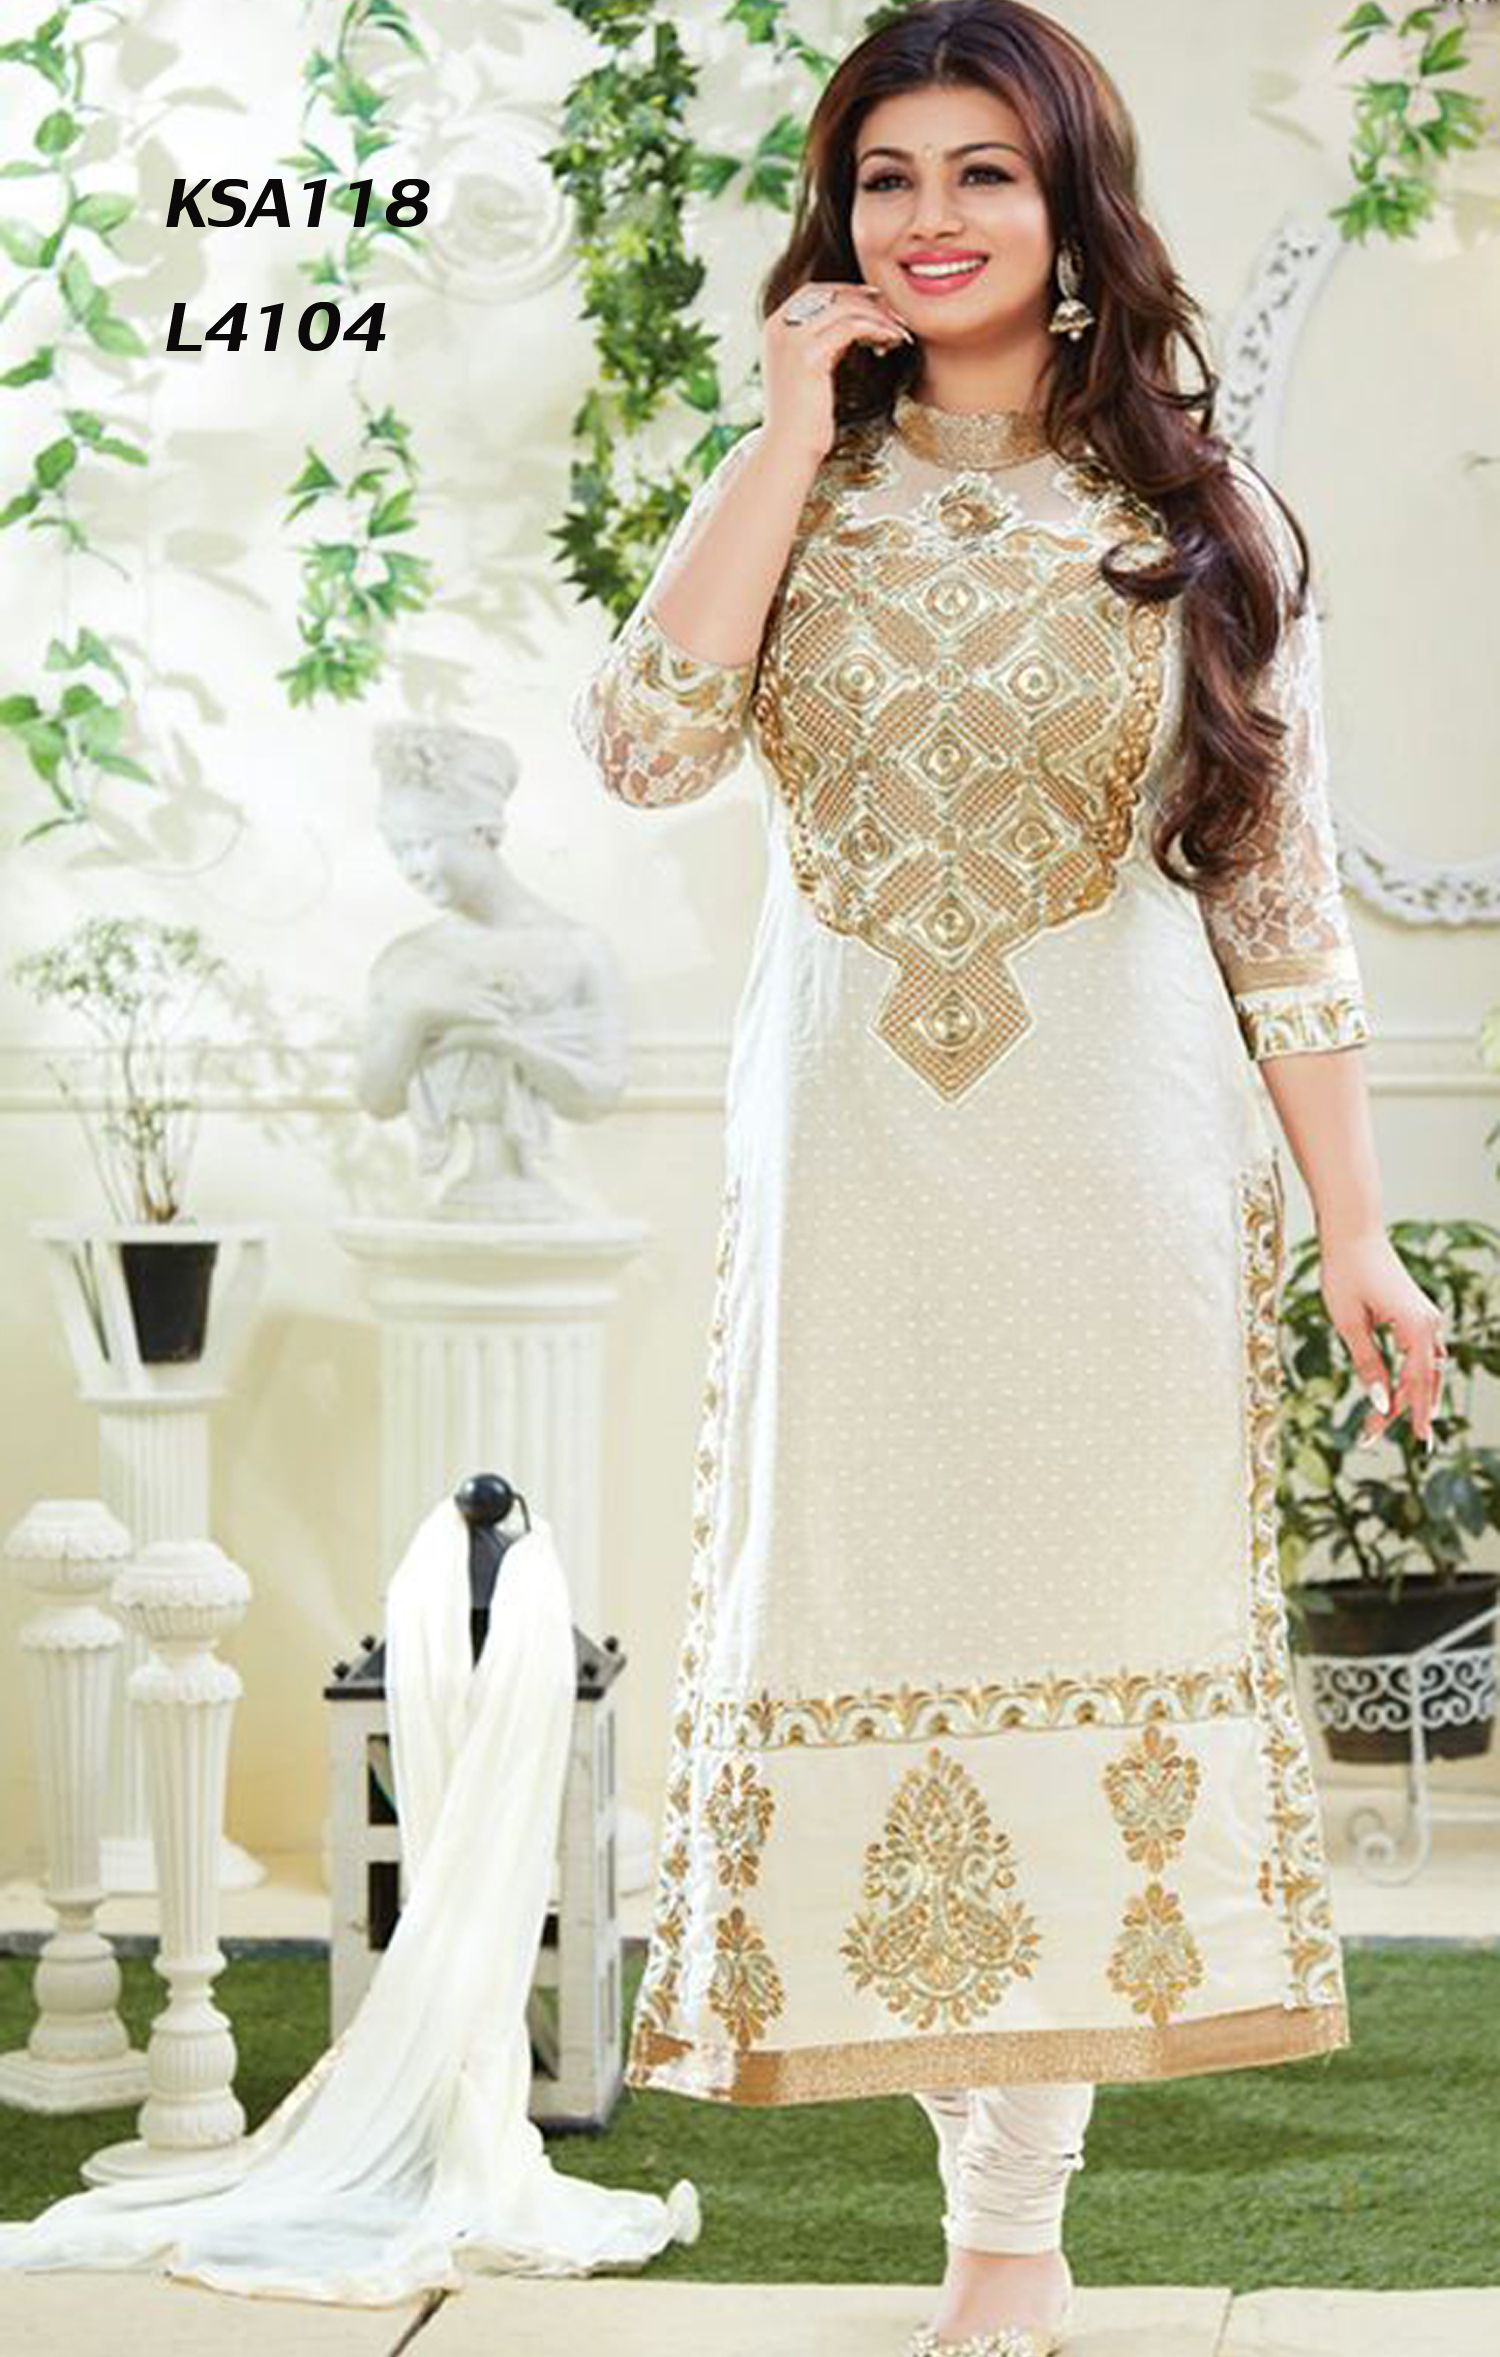 King sales new arrival white embroidery cotton straight cut long